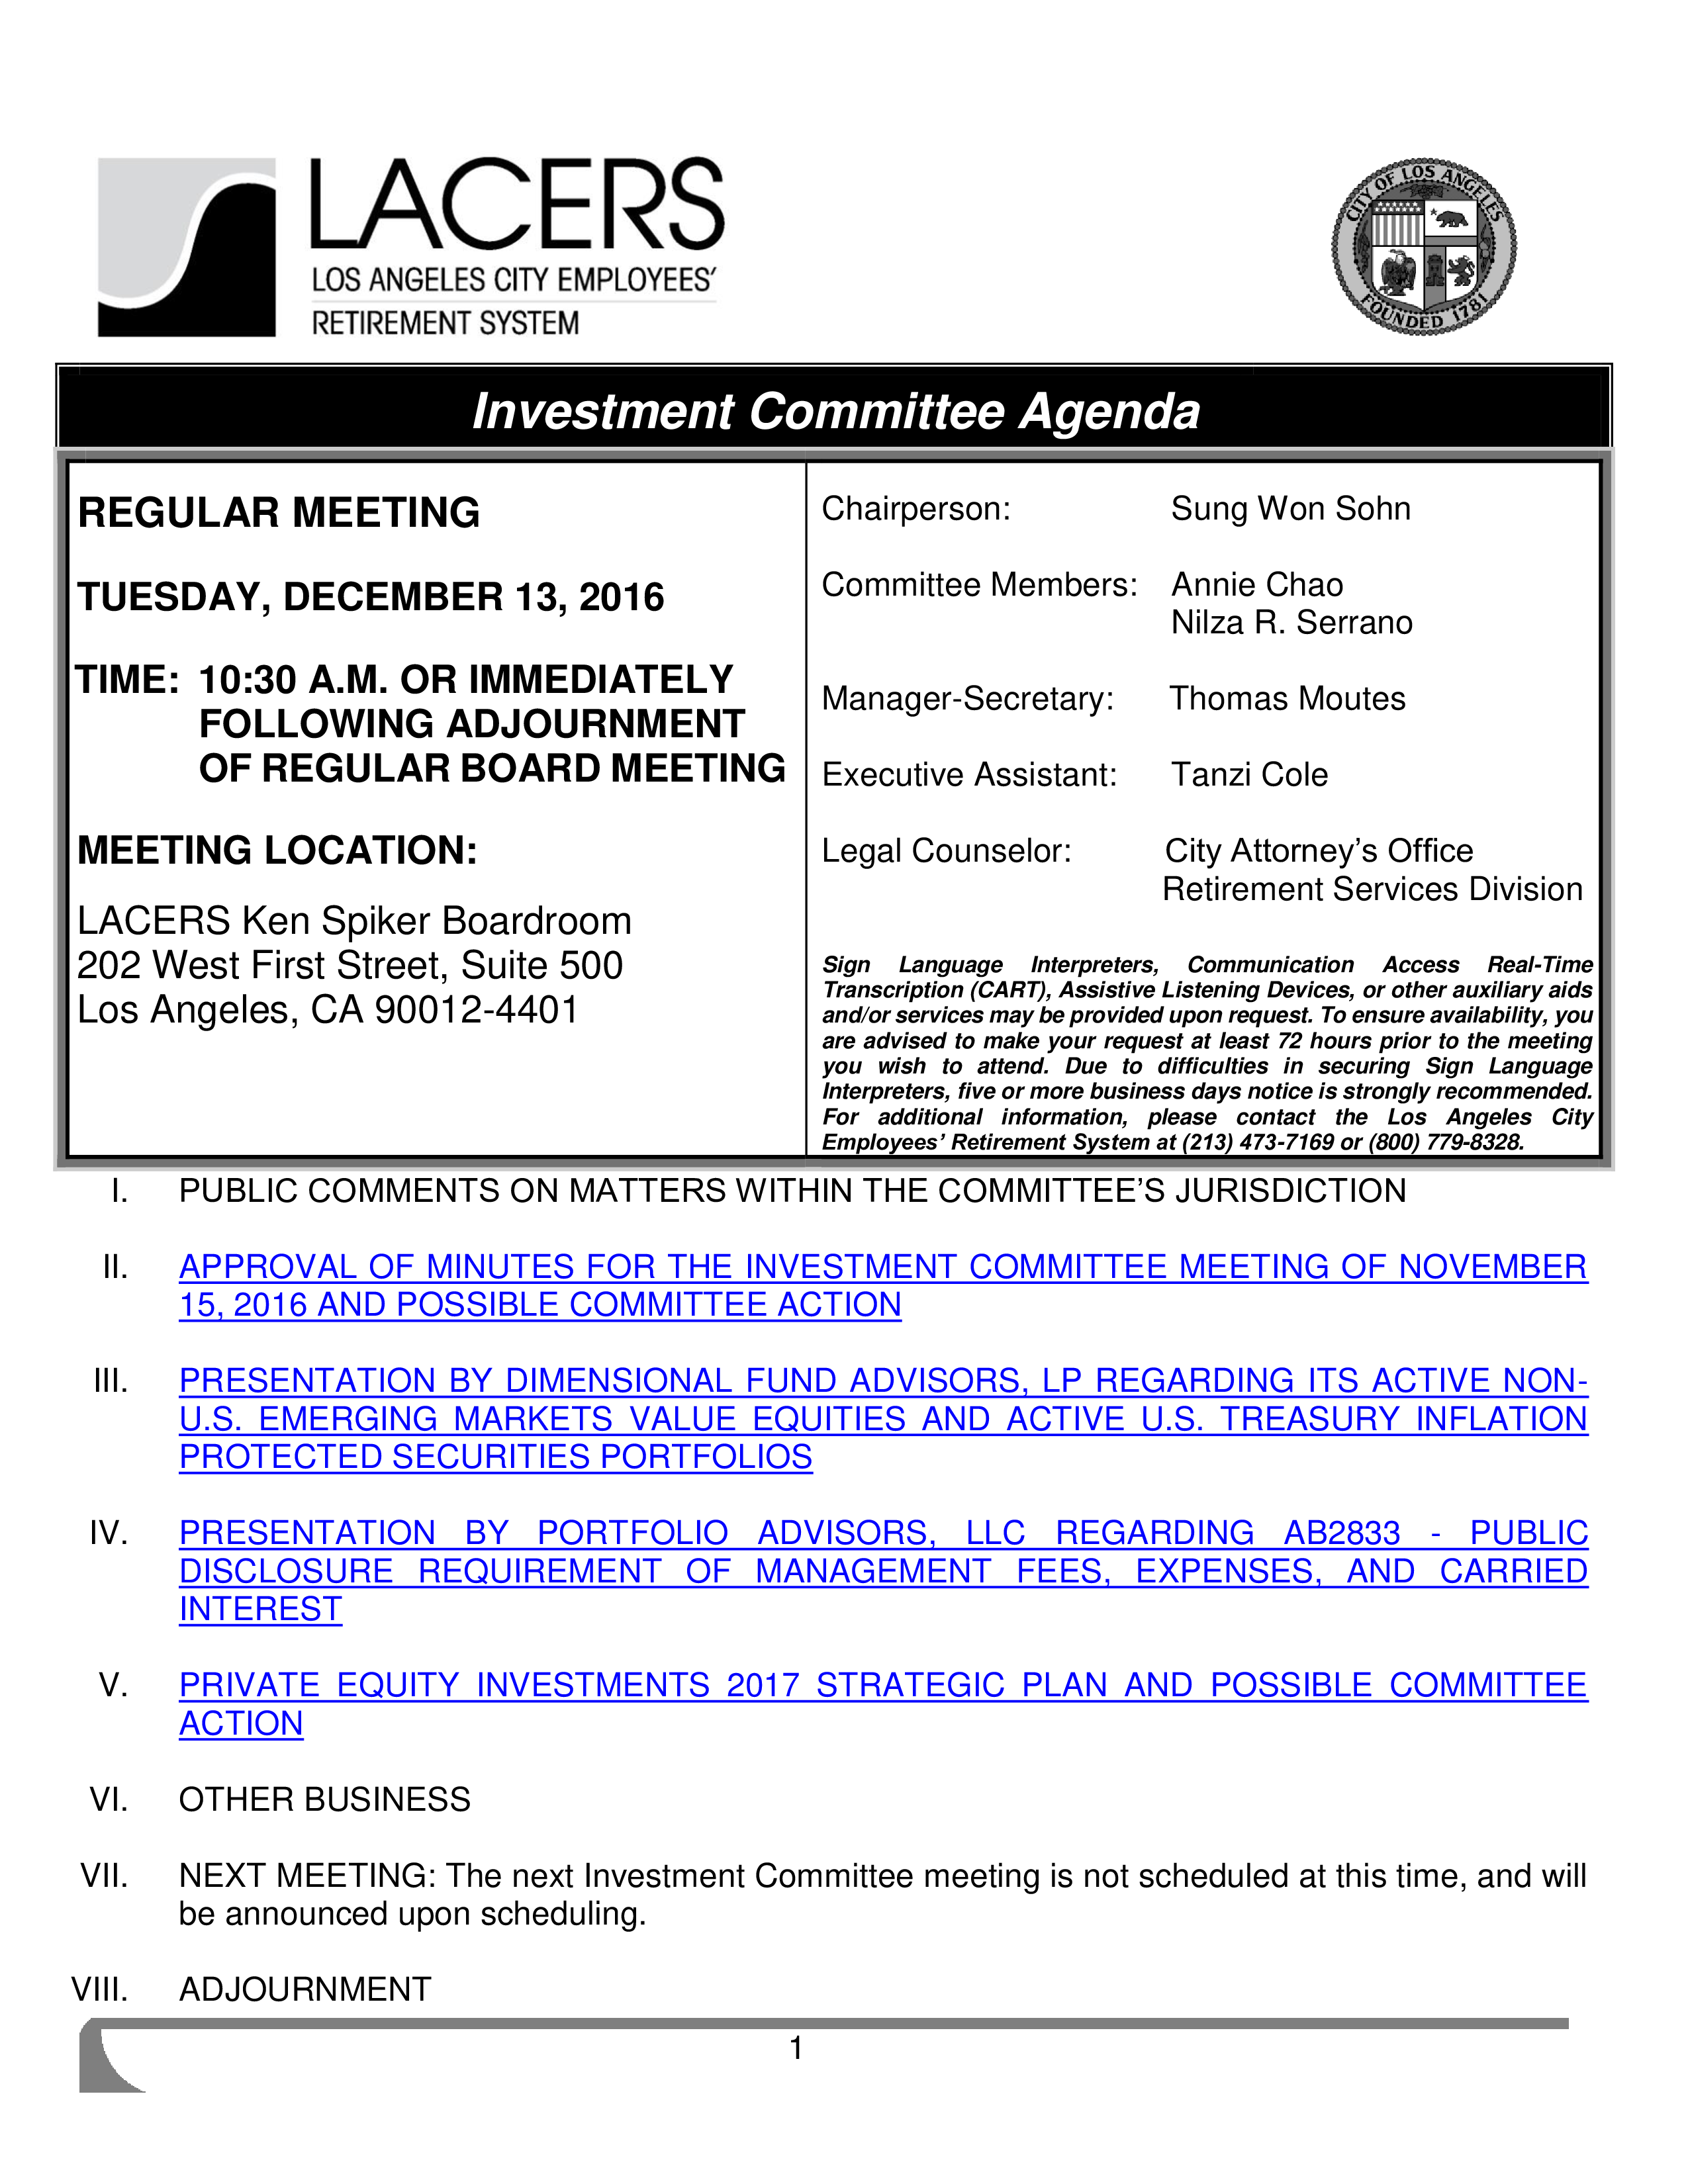 Investment Committee Agenda template main image